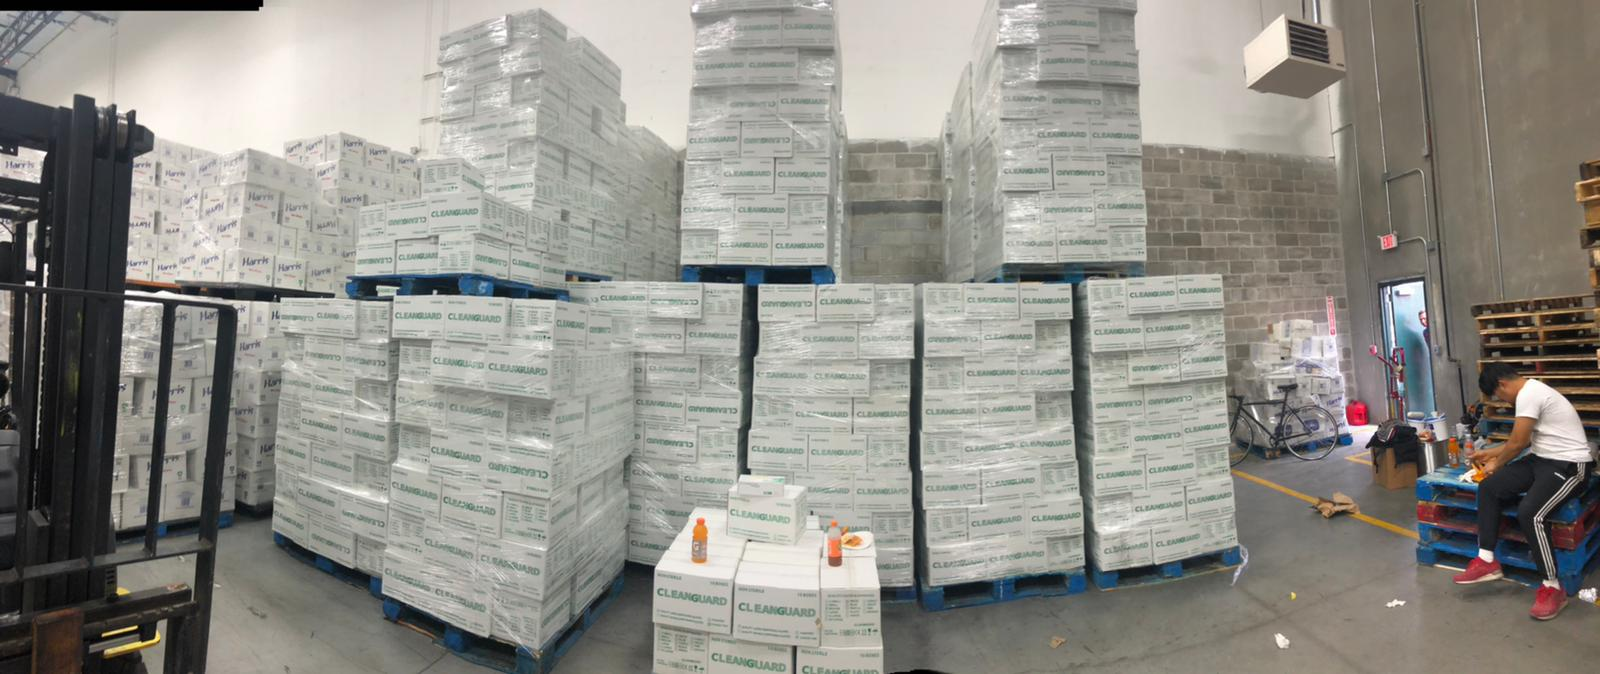 Gloves - 60,000 Latex Gloves - Powder-free - 600 Boxes Of 100 Gloves - $11-$11.5/box